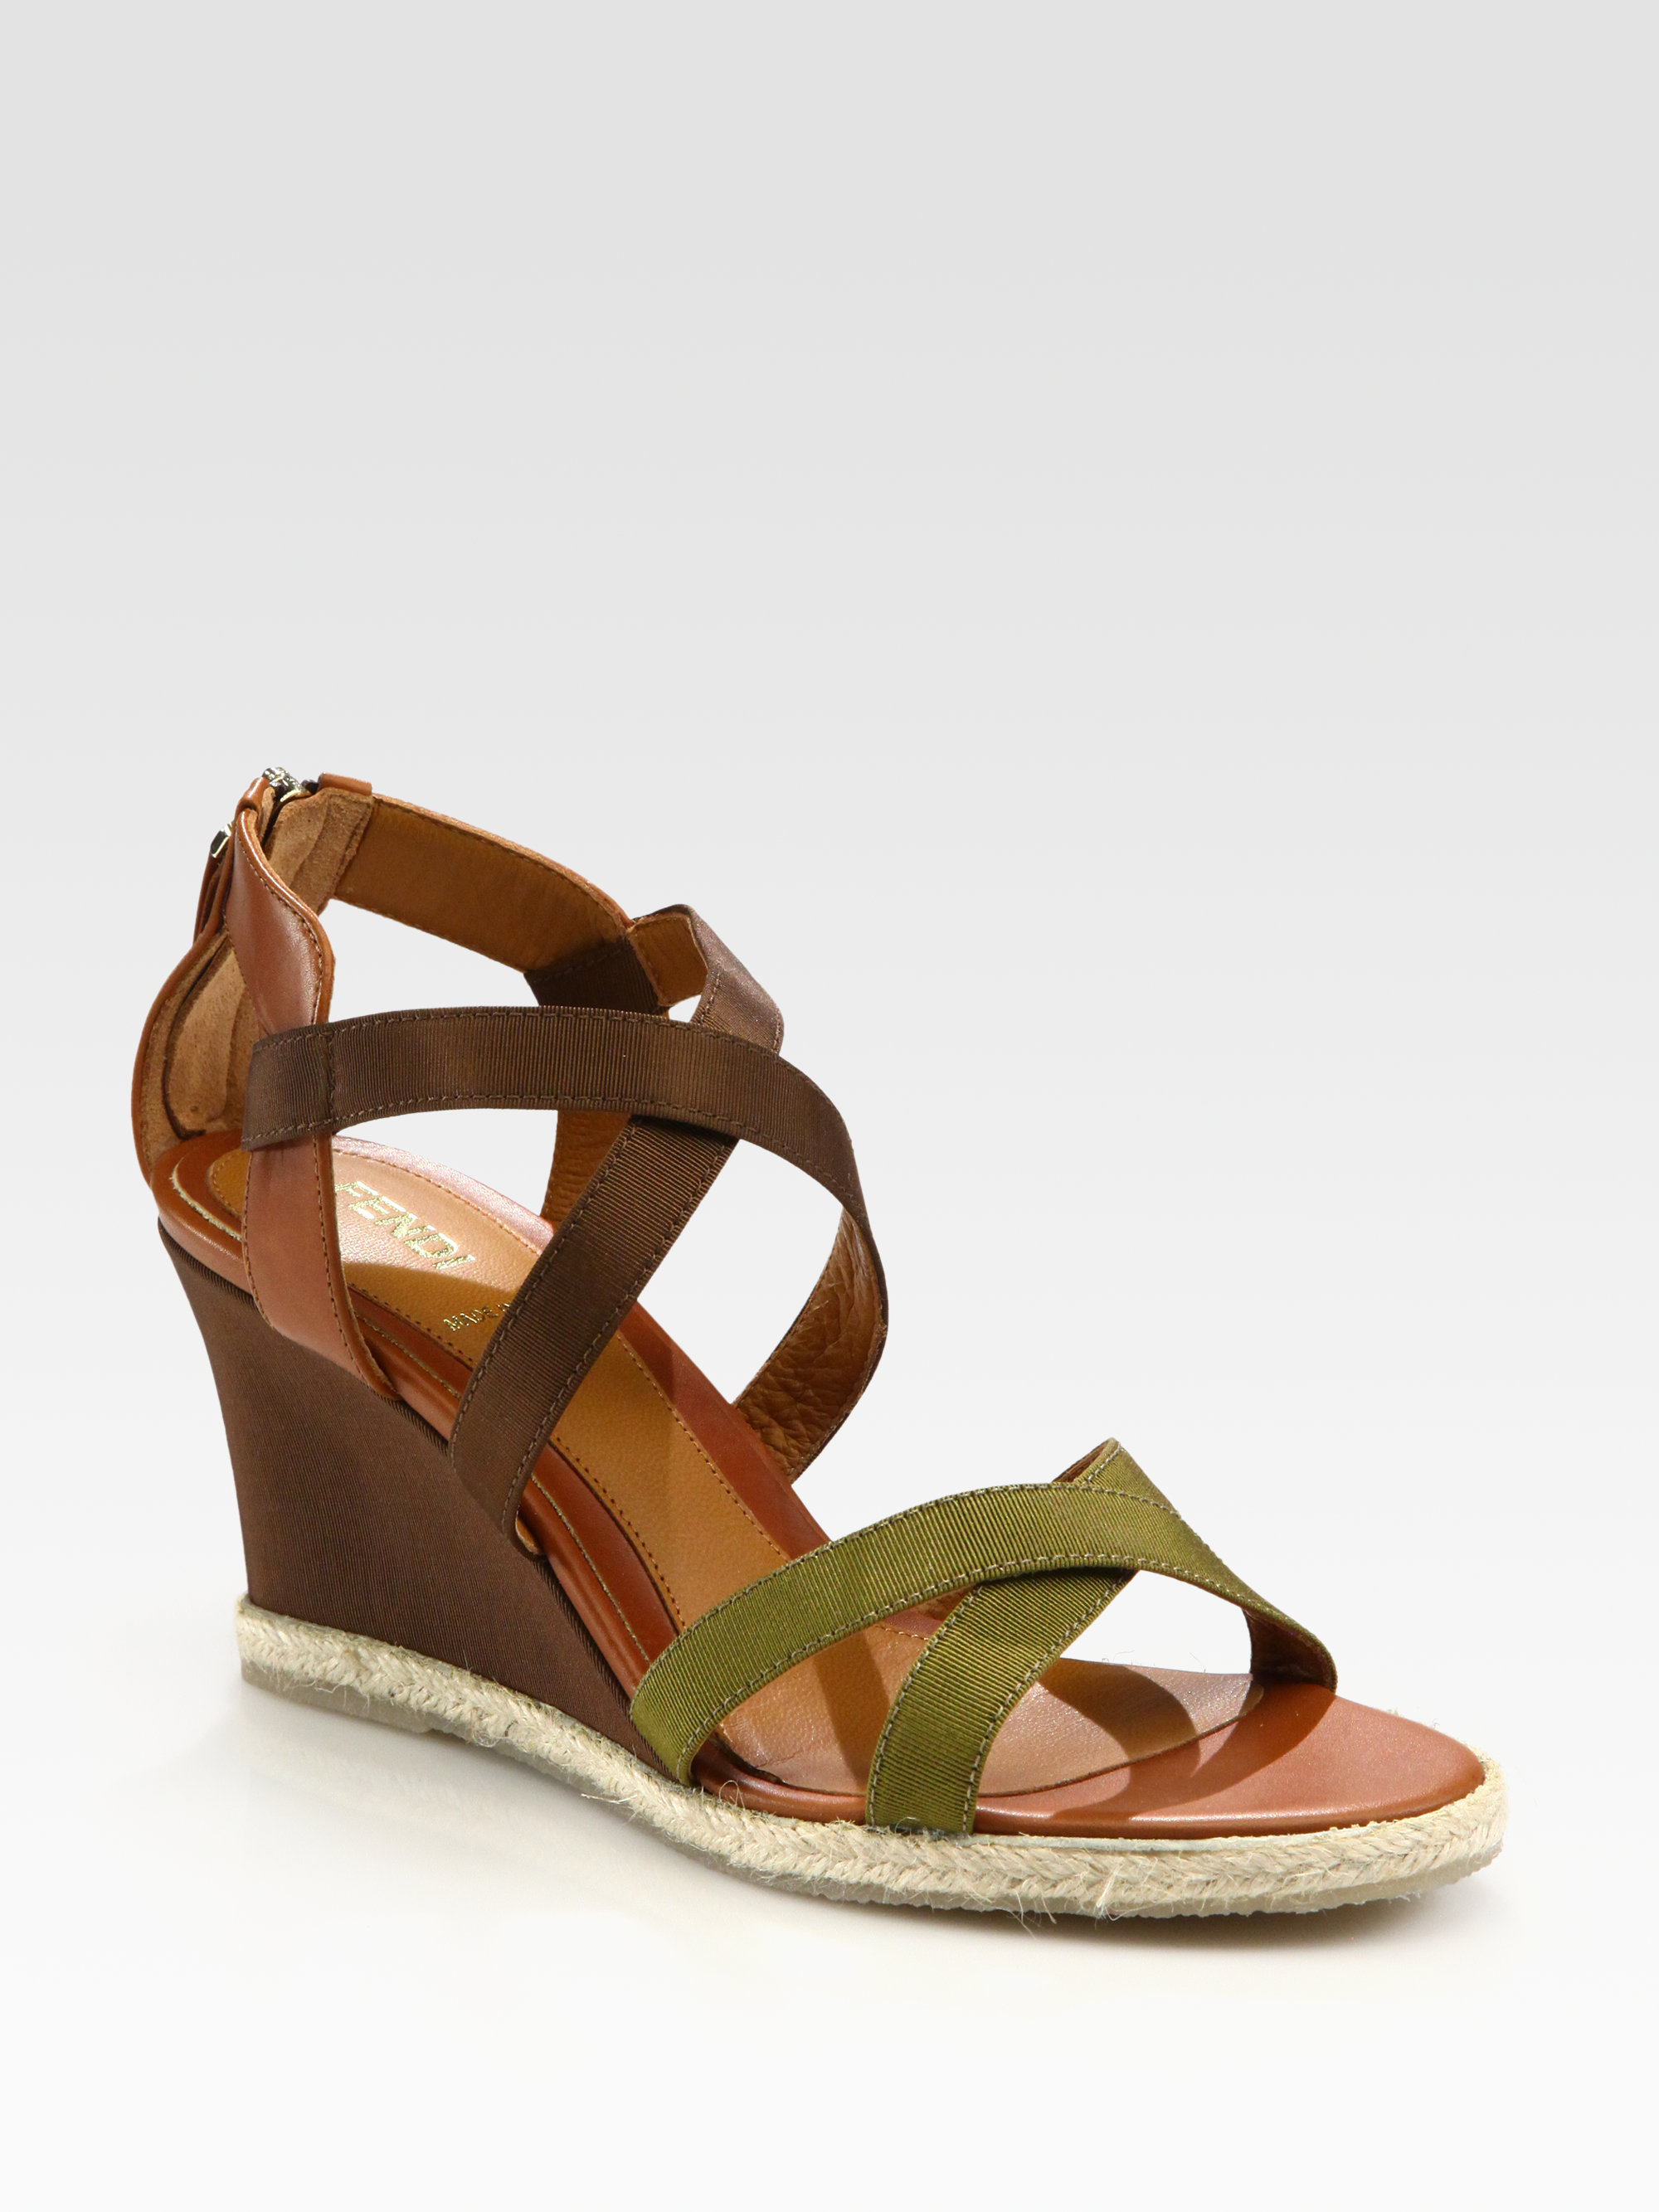 a909a0bbab51 Lyst - Fendi Leather and Grosgrain Ribbon Wedge Sandals in Green